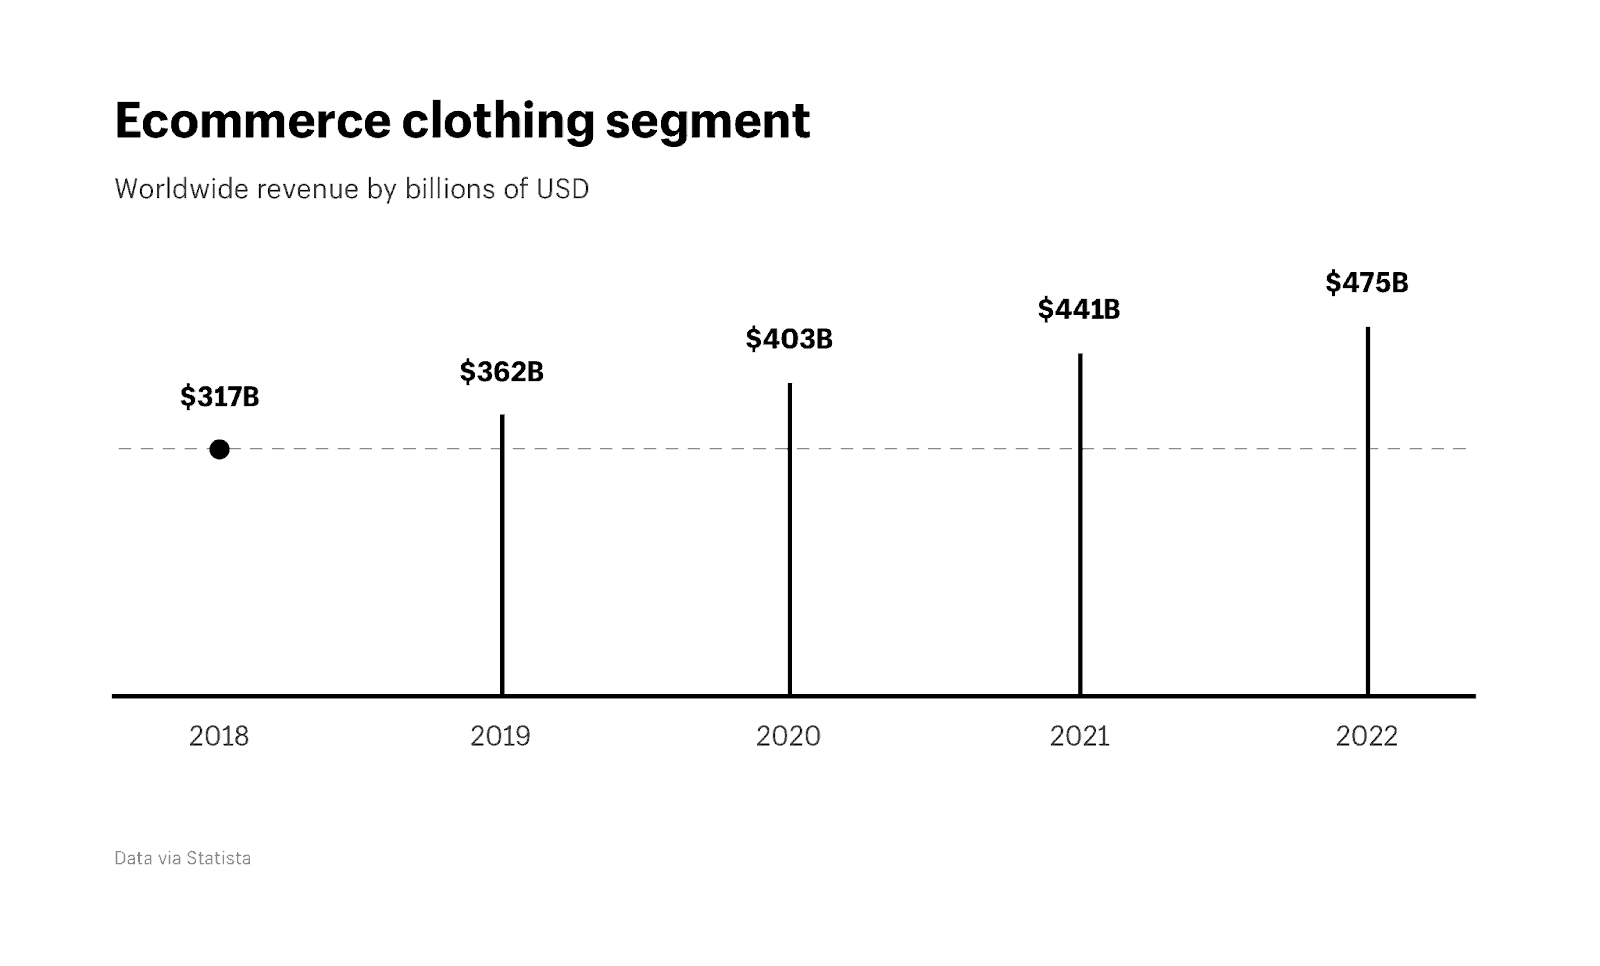 The growth of the fashion market